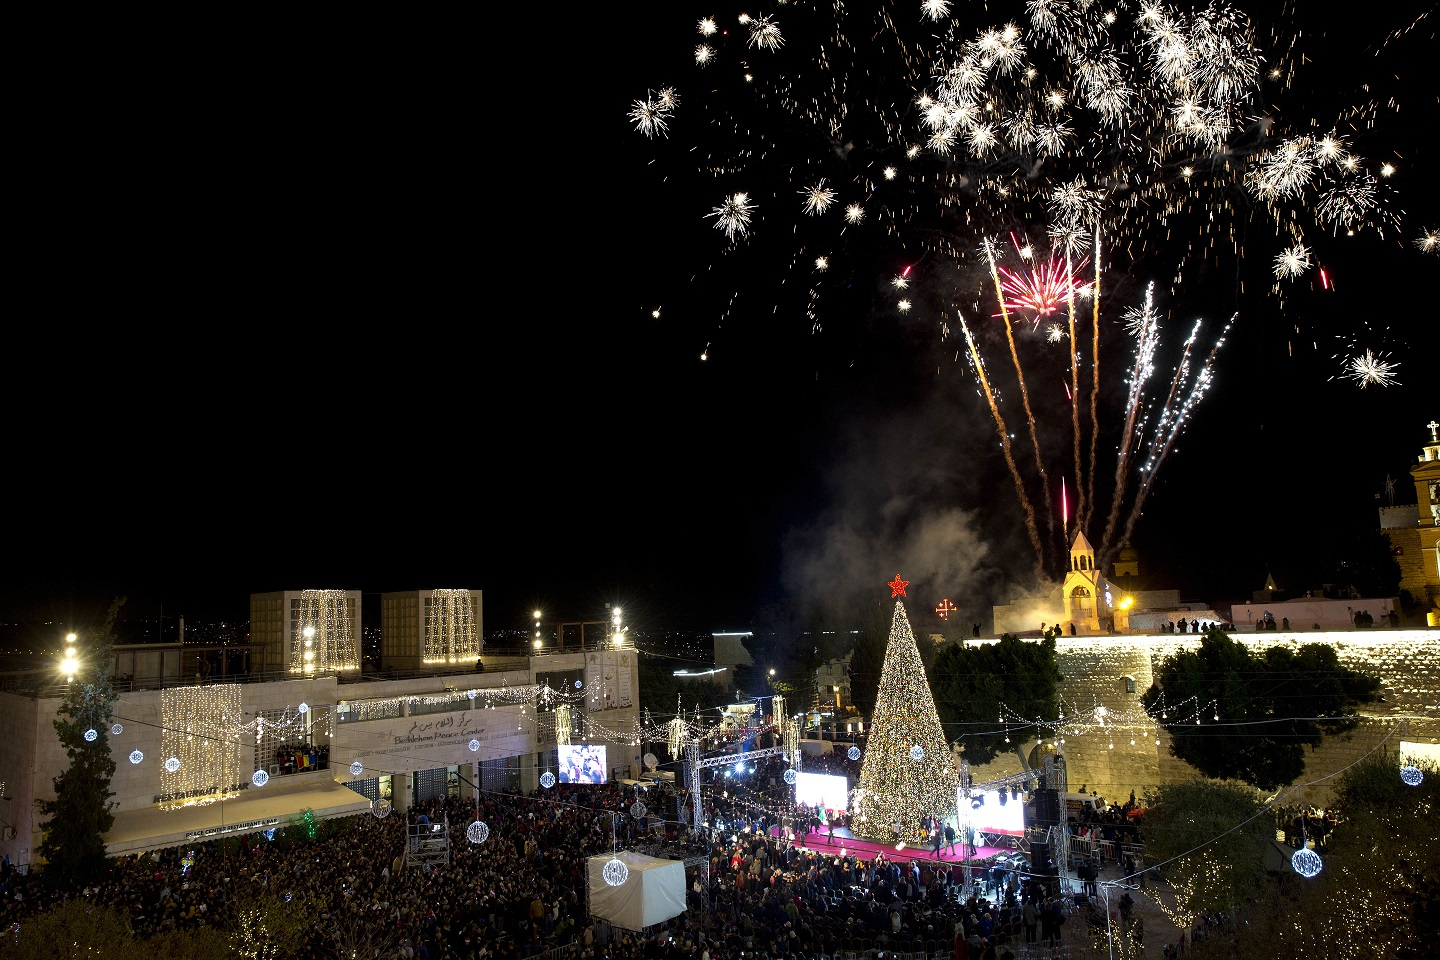 Annual Christmas Eve celebrations take place in Bethlehem